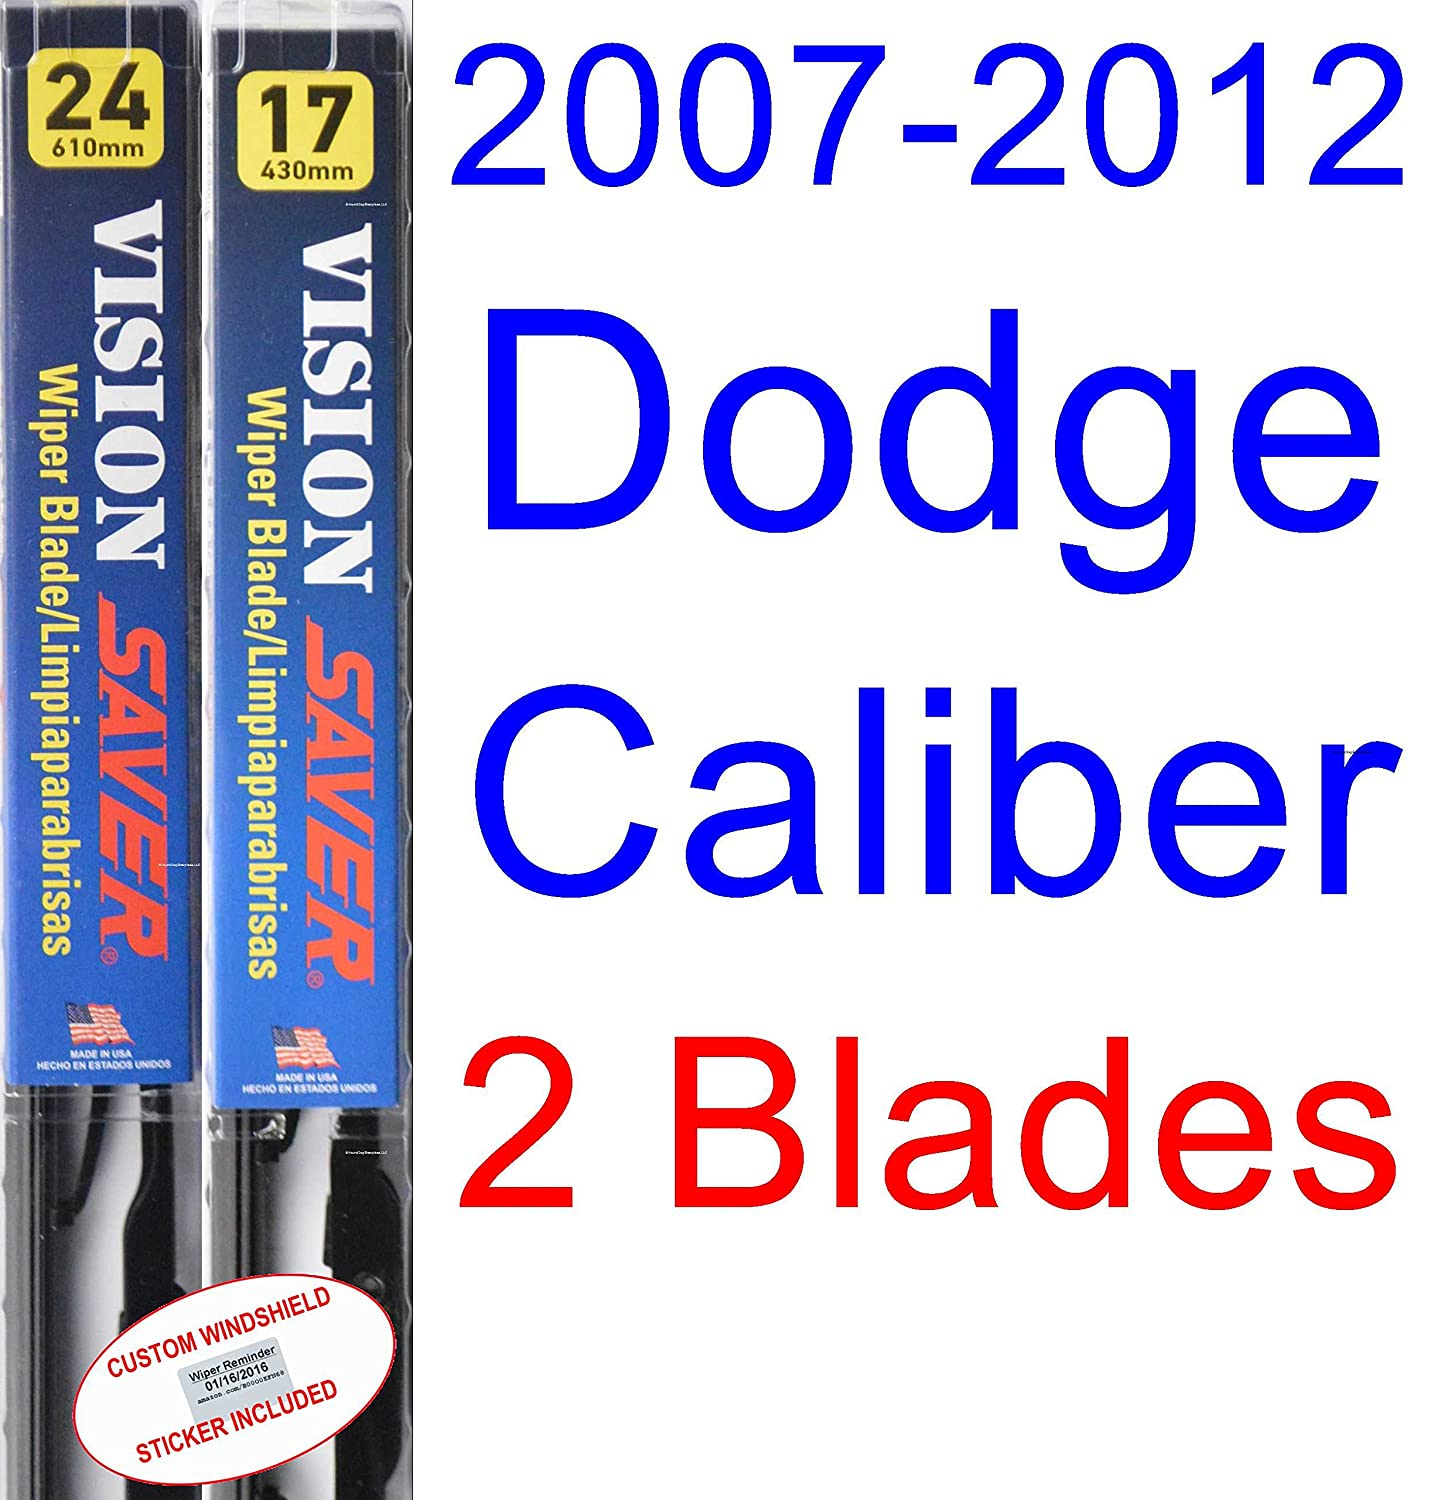 Amazon.com: 2007-2012 Dodge Caliber Replacement Wiper Blade Set/Kit (Set of 2 Blades) (Saver Automotive Products-Vision Saver) (2008,2009,2010,2011): ...